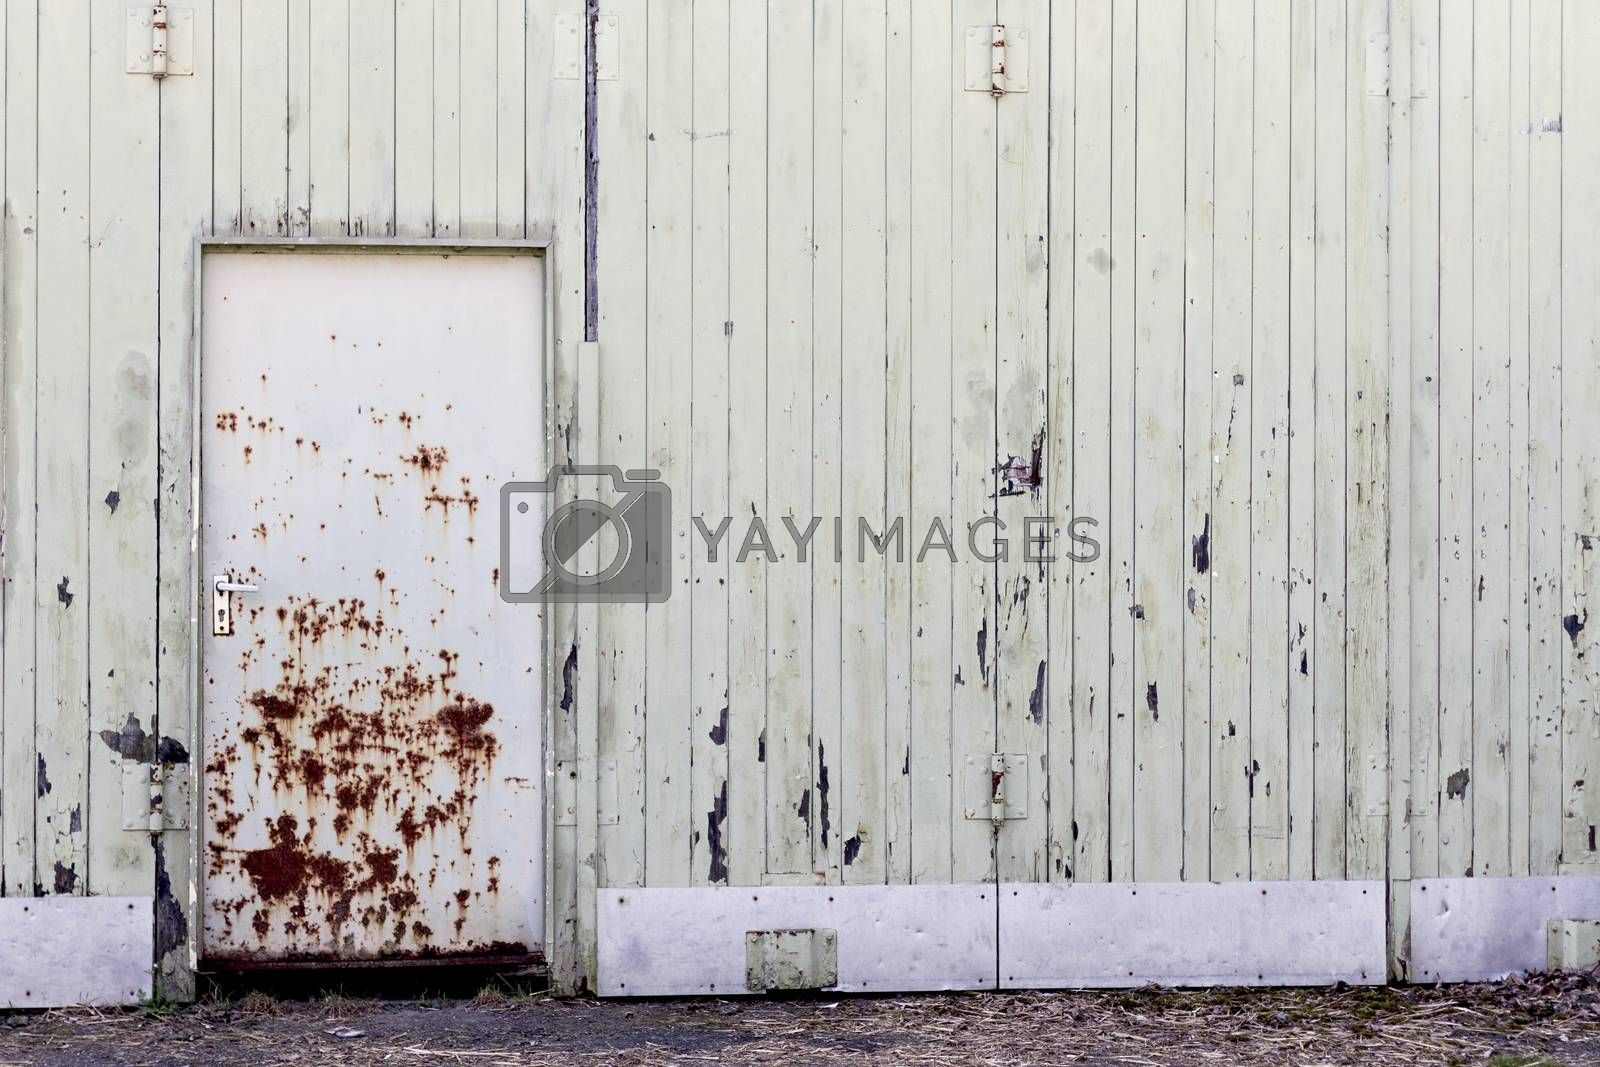 old shelter with rotten door. full frame image